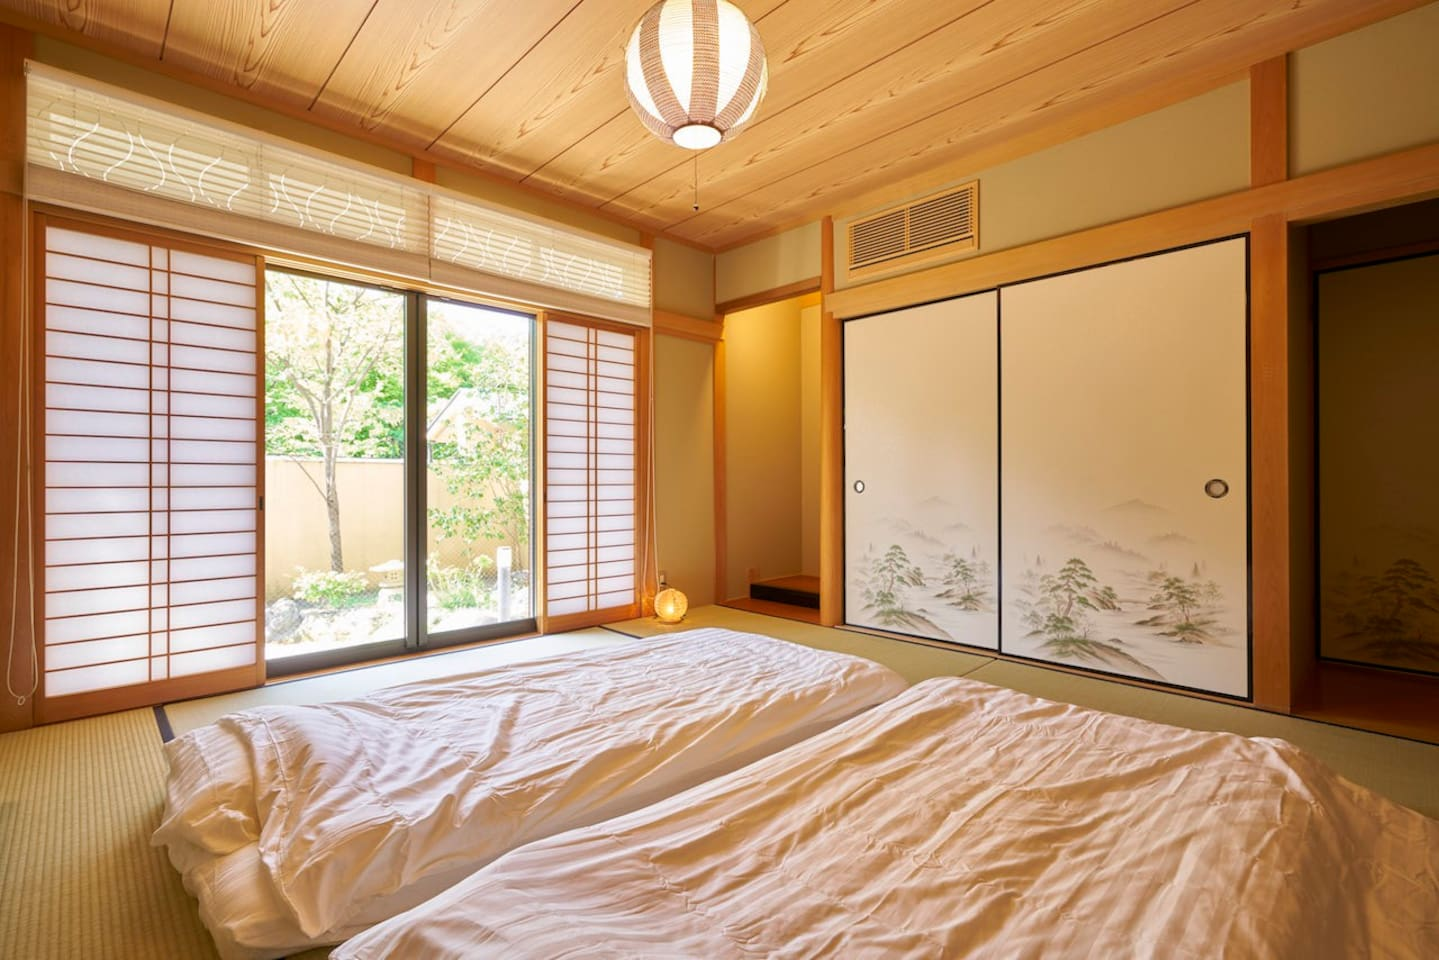 Garden view from the Japanese bedroom